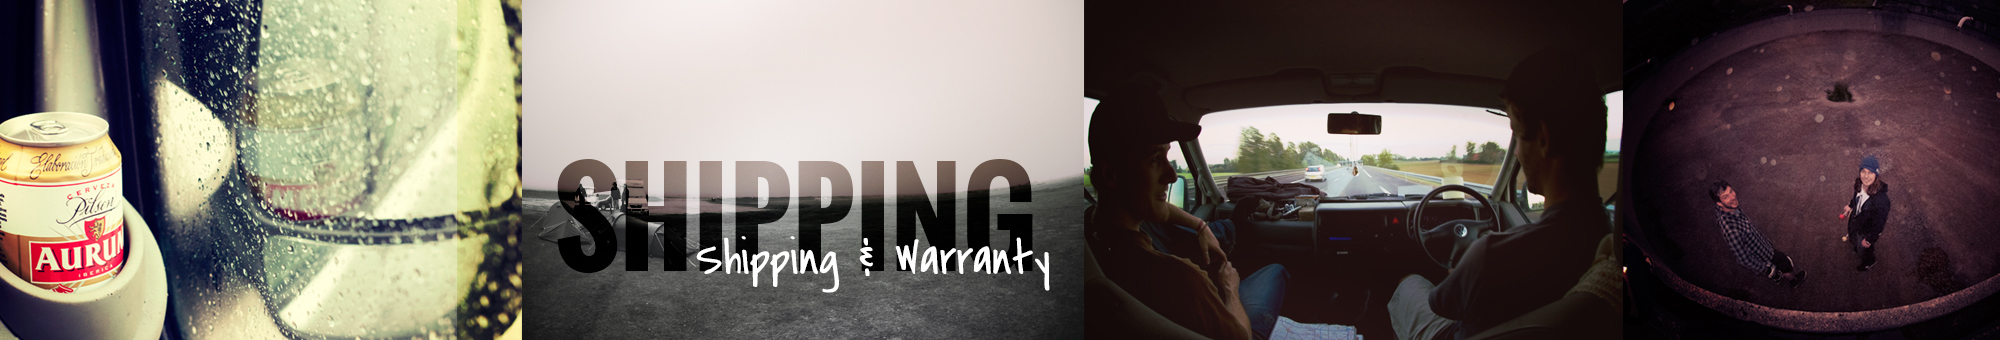 Image: Shipping & Warranty